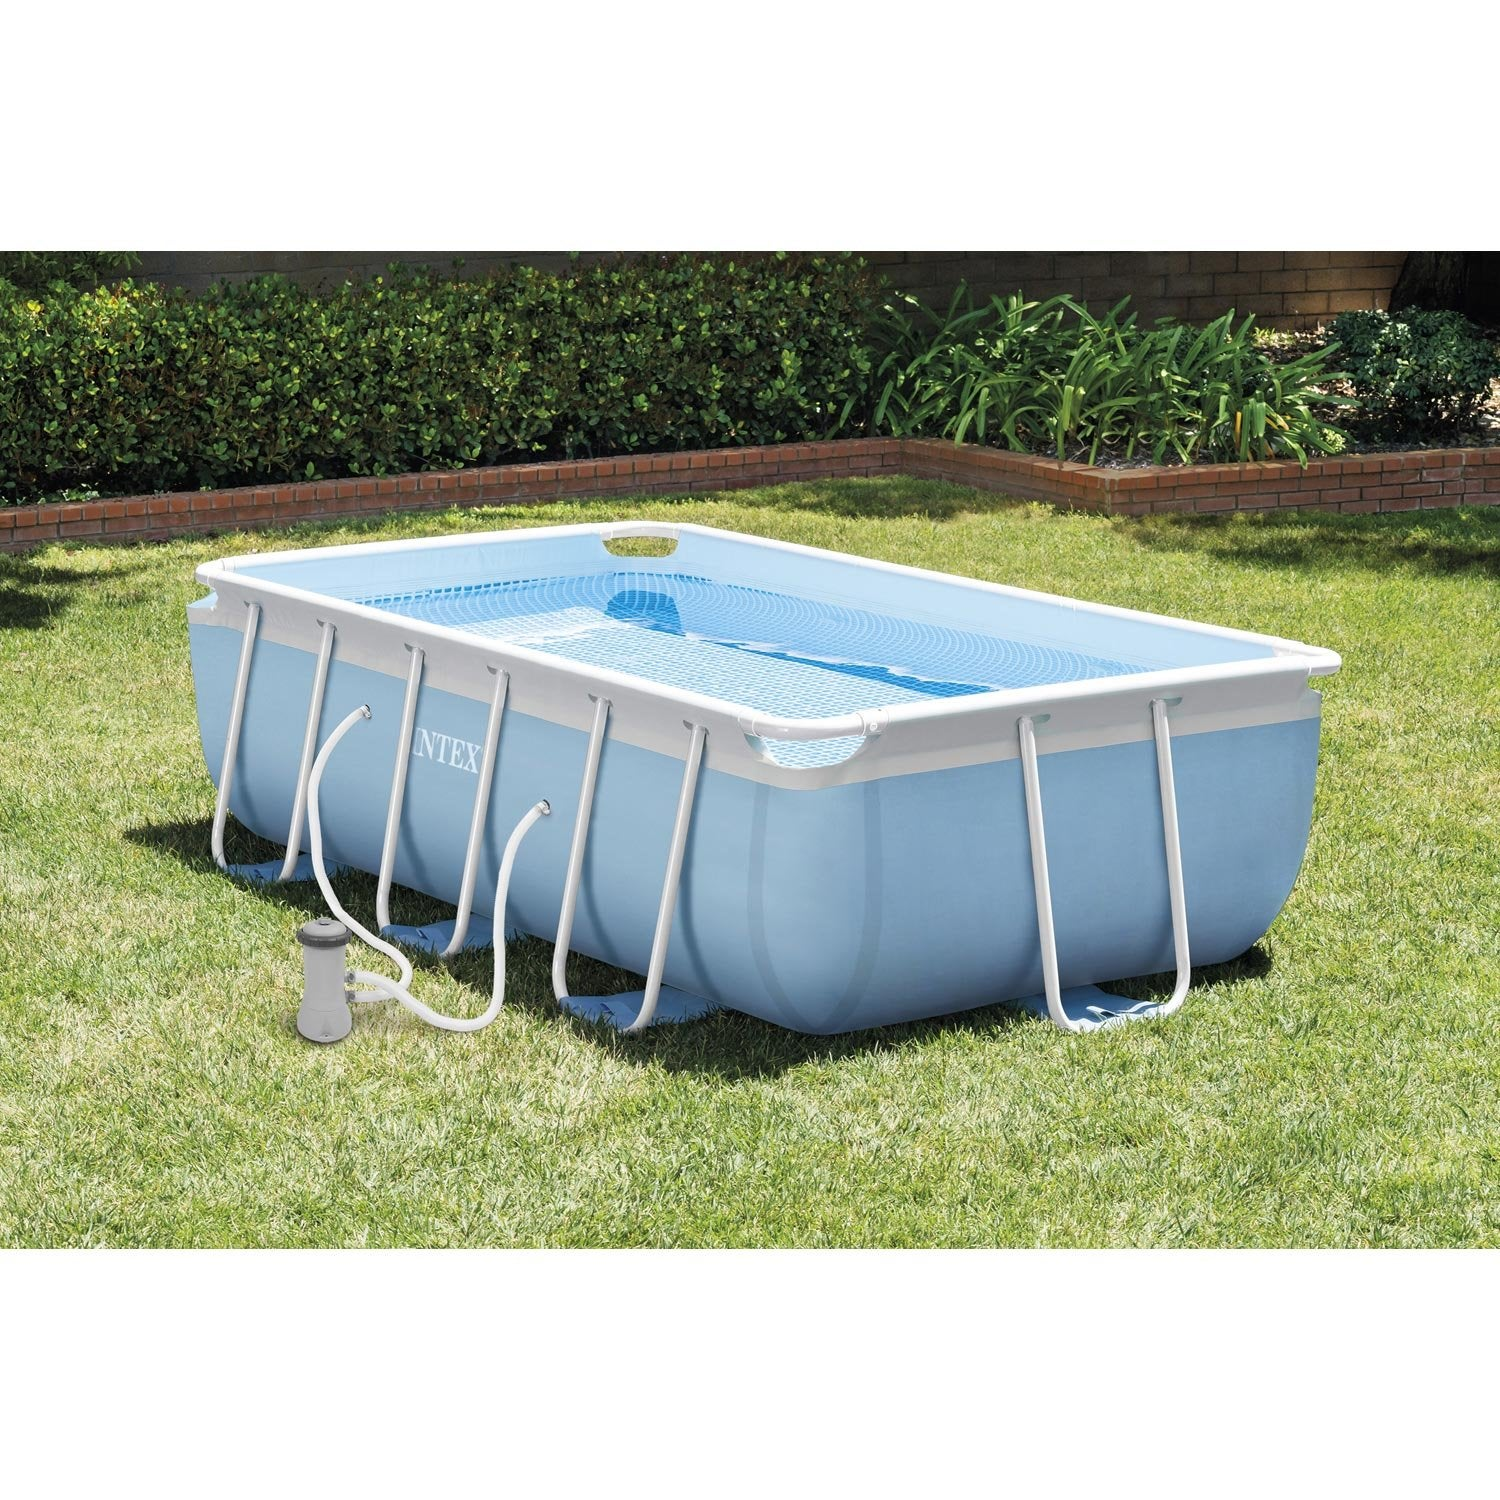 Piscine hors sol autoportante tubulaire intex l 3 4 x l 2 for Piscine demontable hors sol